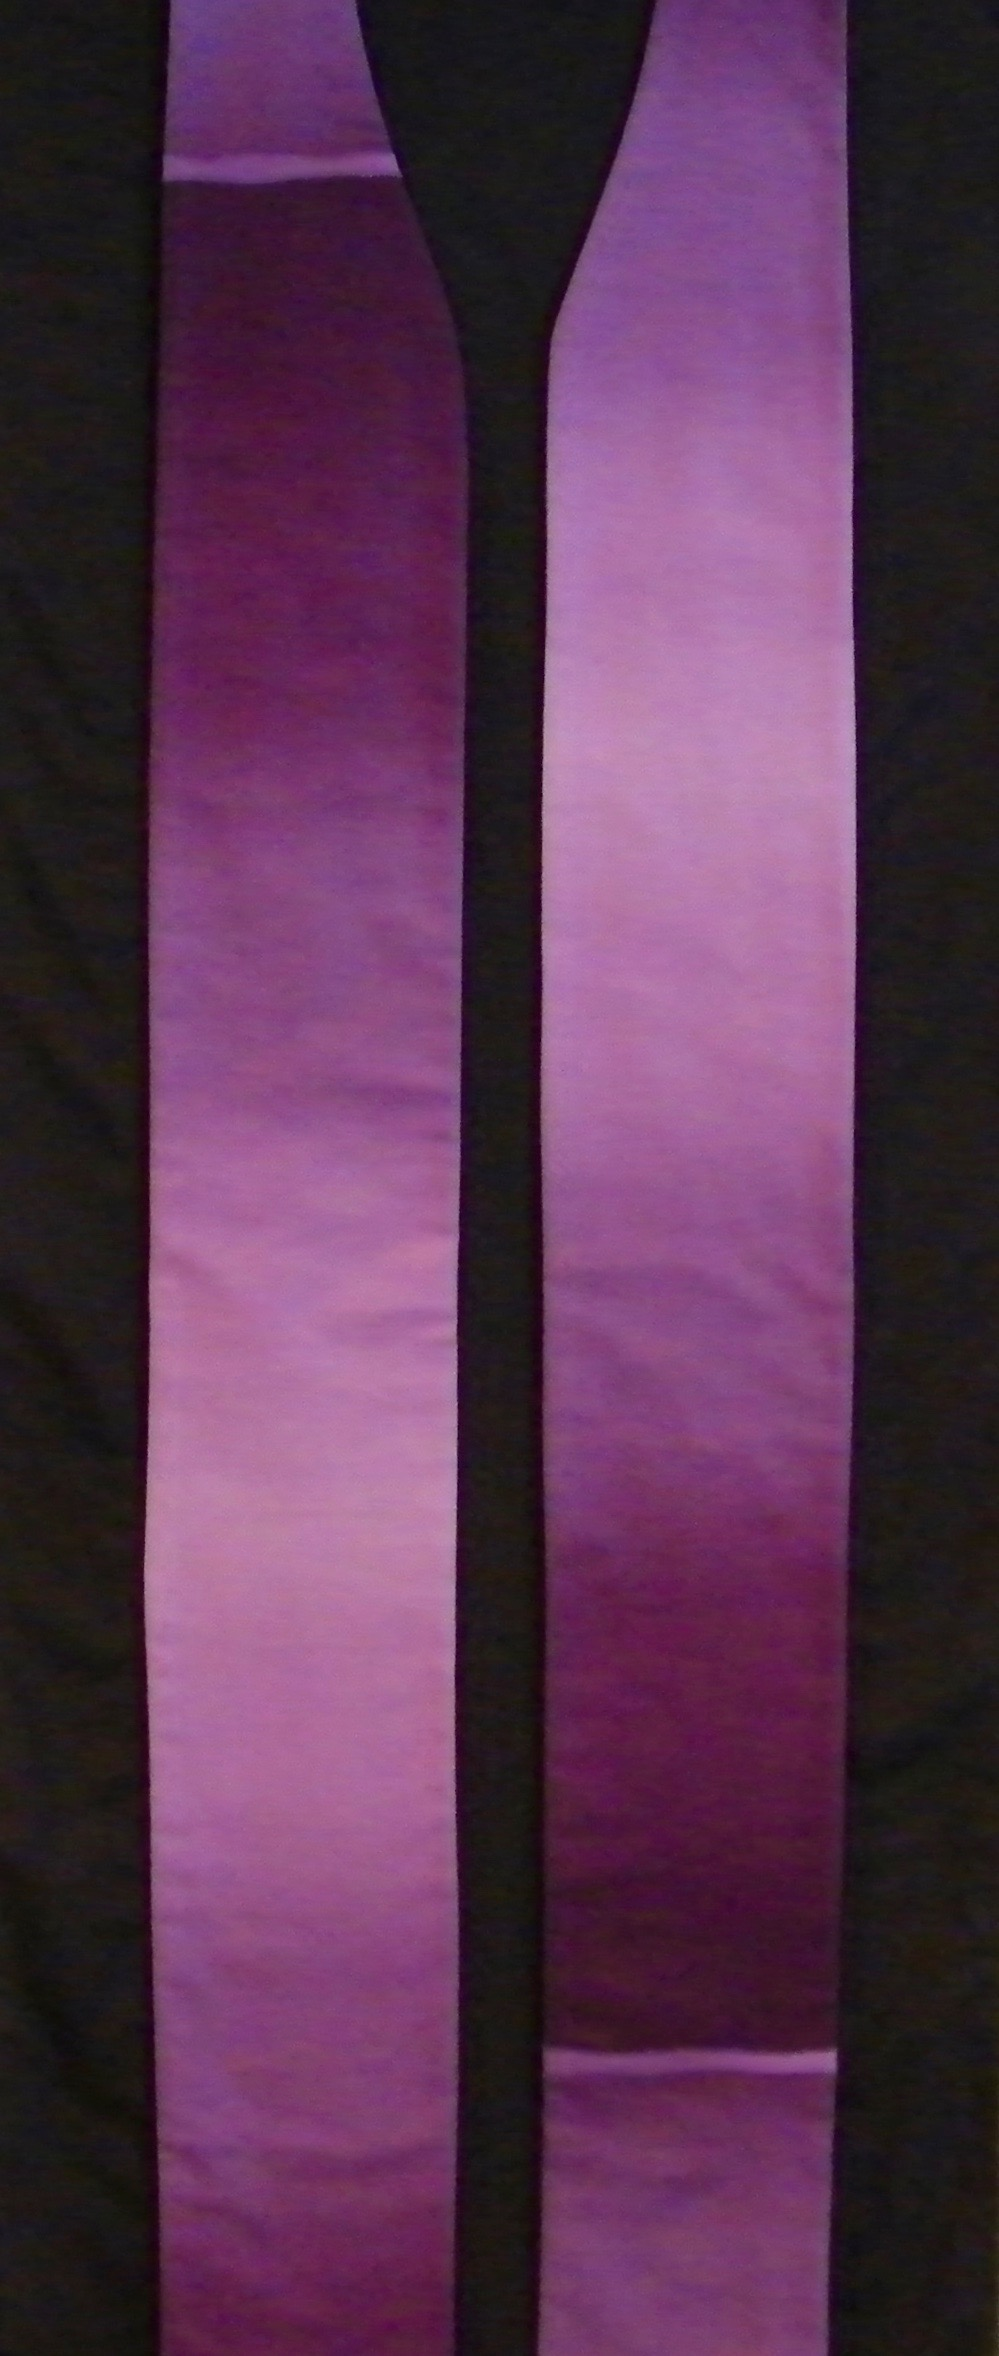 Ombre fabric - Perfect for a stole for Lent!